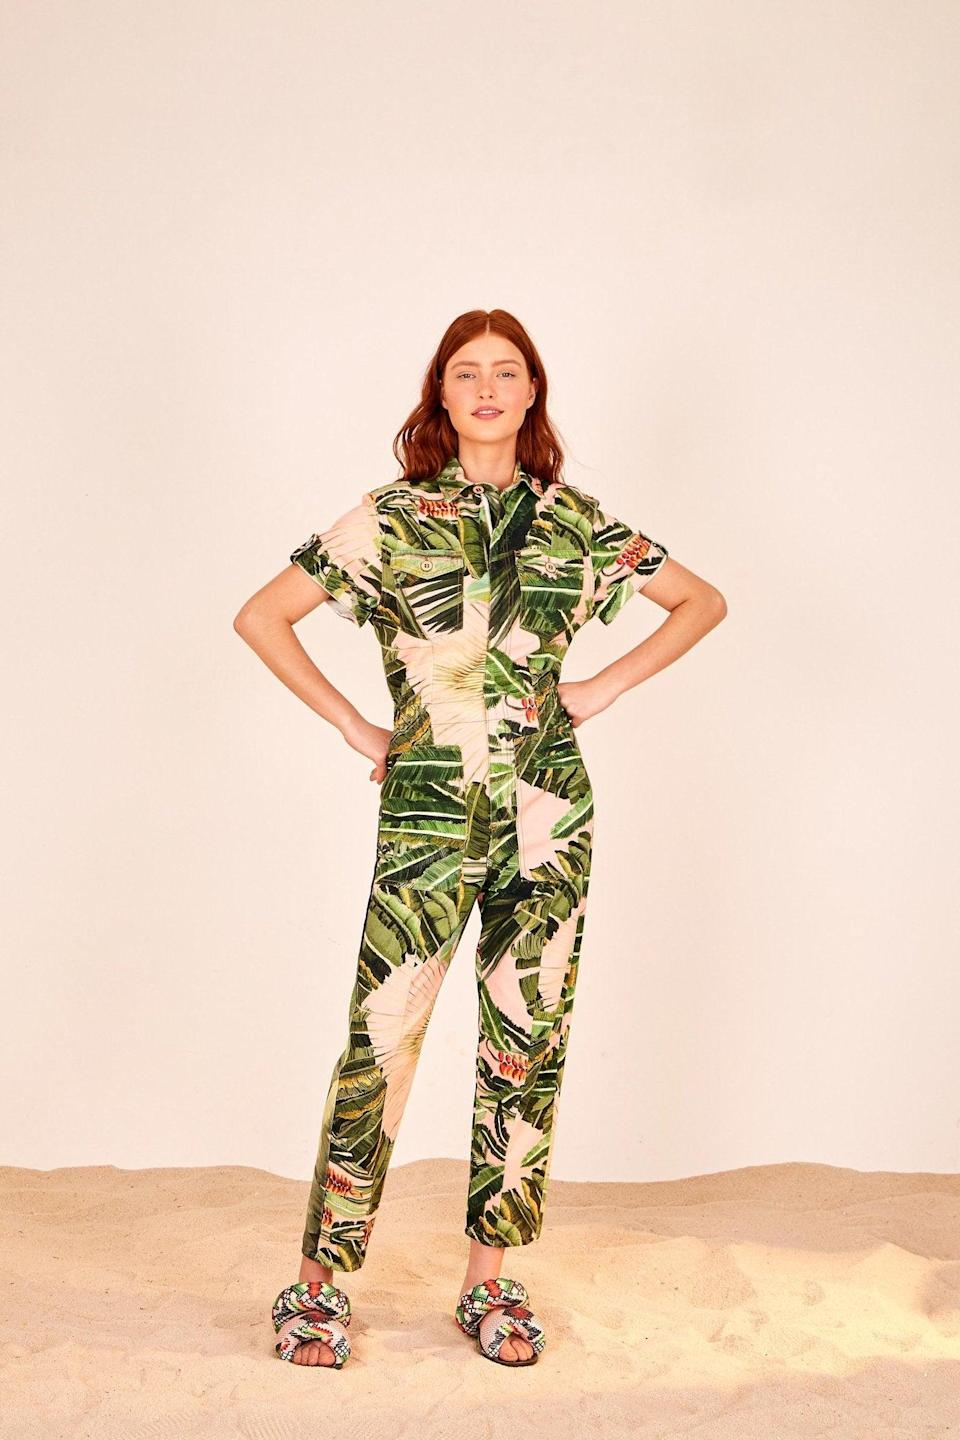 """<br><br><strong>Farm Rio</strong> Amazonia Forest Utility Jumpsuit, $, available at <a href=""""https://go.skimresources.com/?id=30283X879131&url=https%3A%2F%2Fwww.farmrio.com%2Fcollections%2Fsale%2Fproducts%2Famazonia-forest-utility-jumpsuit"""" rel=""""nofollow noopener"""" target=""""_blank"""" data-ylk=""""slk:Farm Rio"""" class=""""link rapid-noclick-resp"""">Farm Rio</a>"""